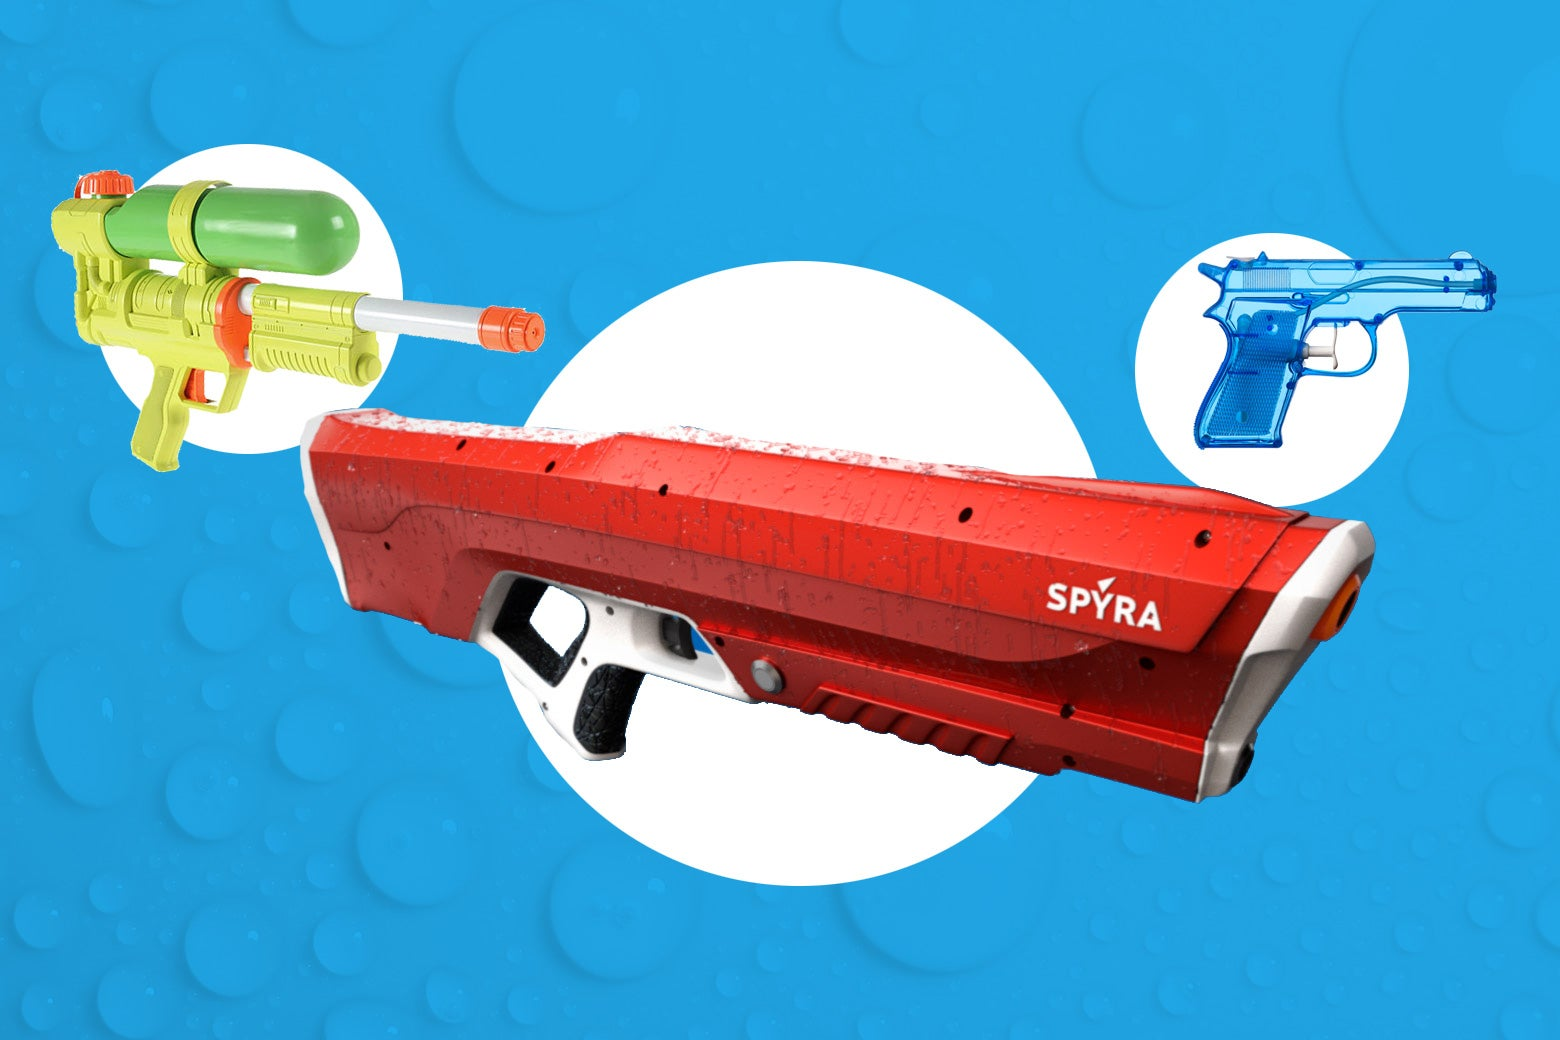 A Super Soaker, a Spyra One, and a water gun that resembles a real 9 mm pistol.